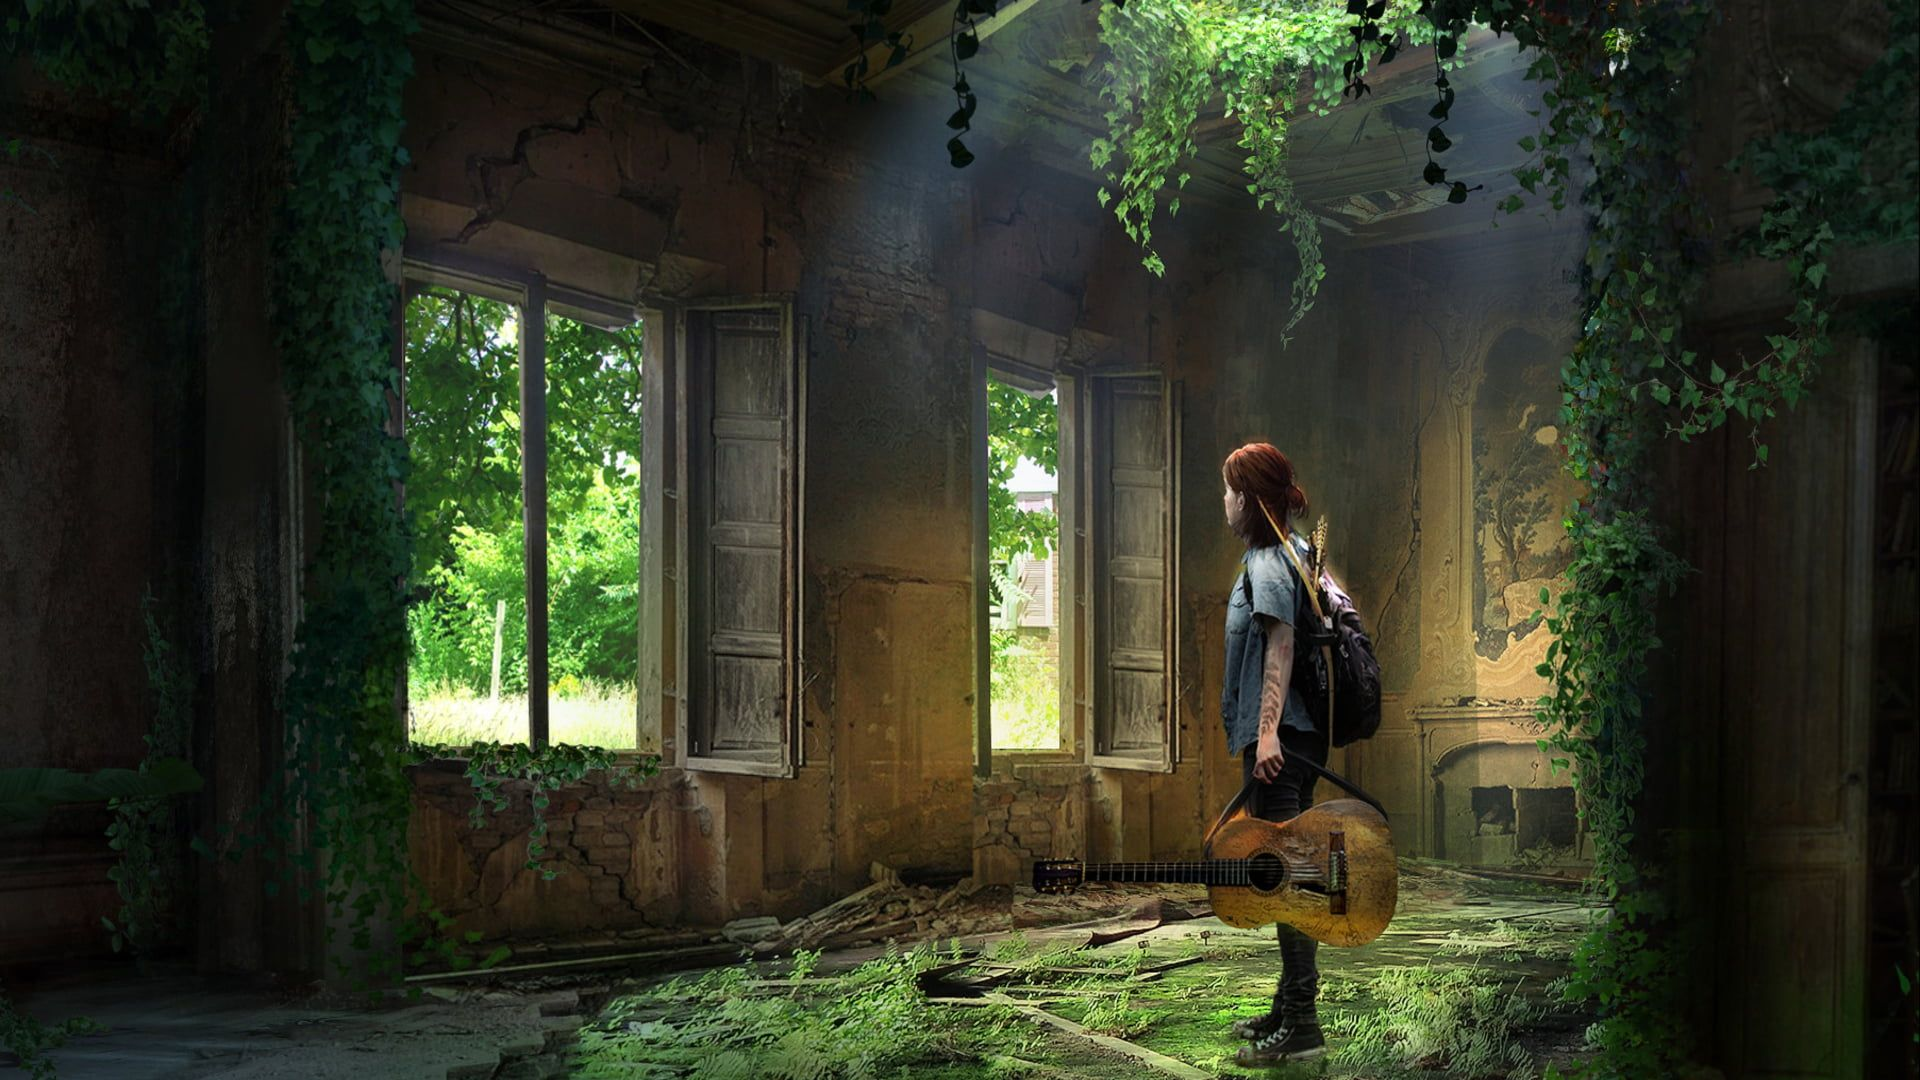 Video Game The Last Of Us Part Ii Ellie The Last Of Us The Last Of Us 1080p Wallpaper Hdwallpap Last Of Us Wallpaper Last Of Us 2 Wallpaper The Last